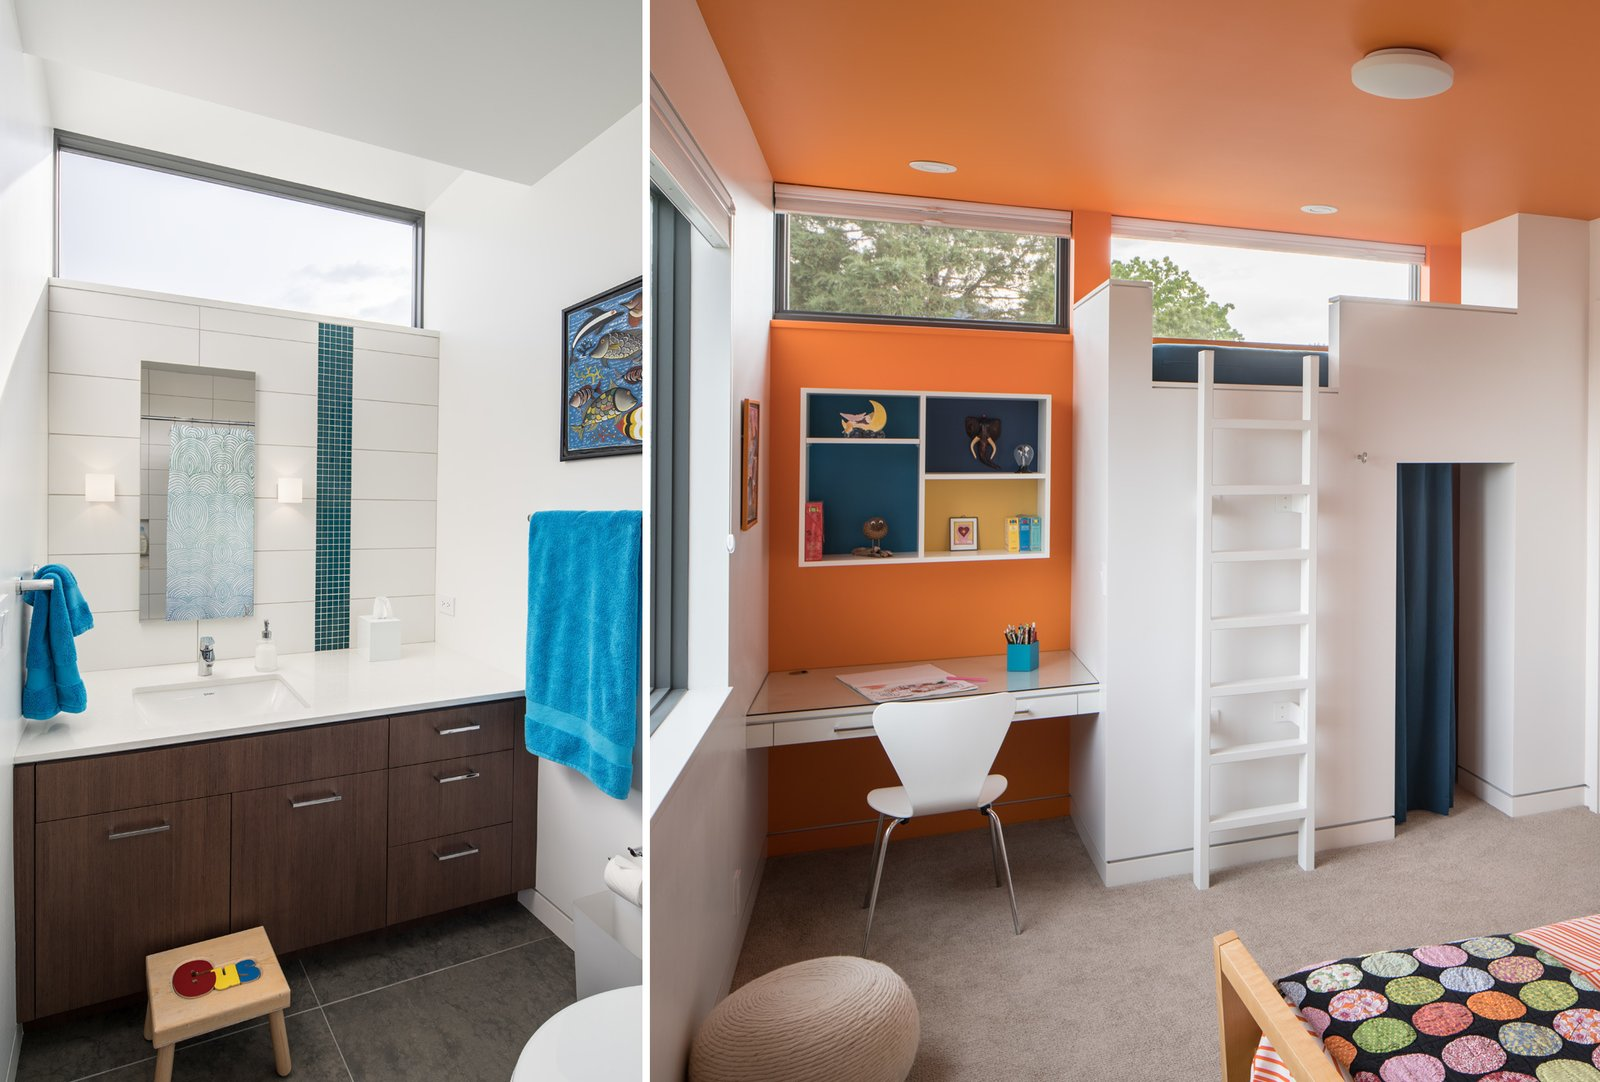 Kid's bedroom with loft sleeping area and reading nook. A whimsical orange color wraps down the ceiling and back wall.